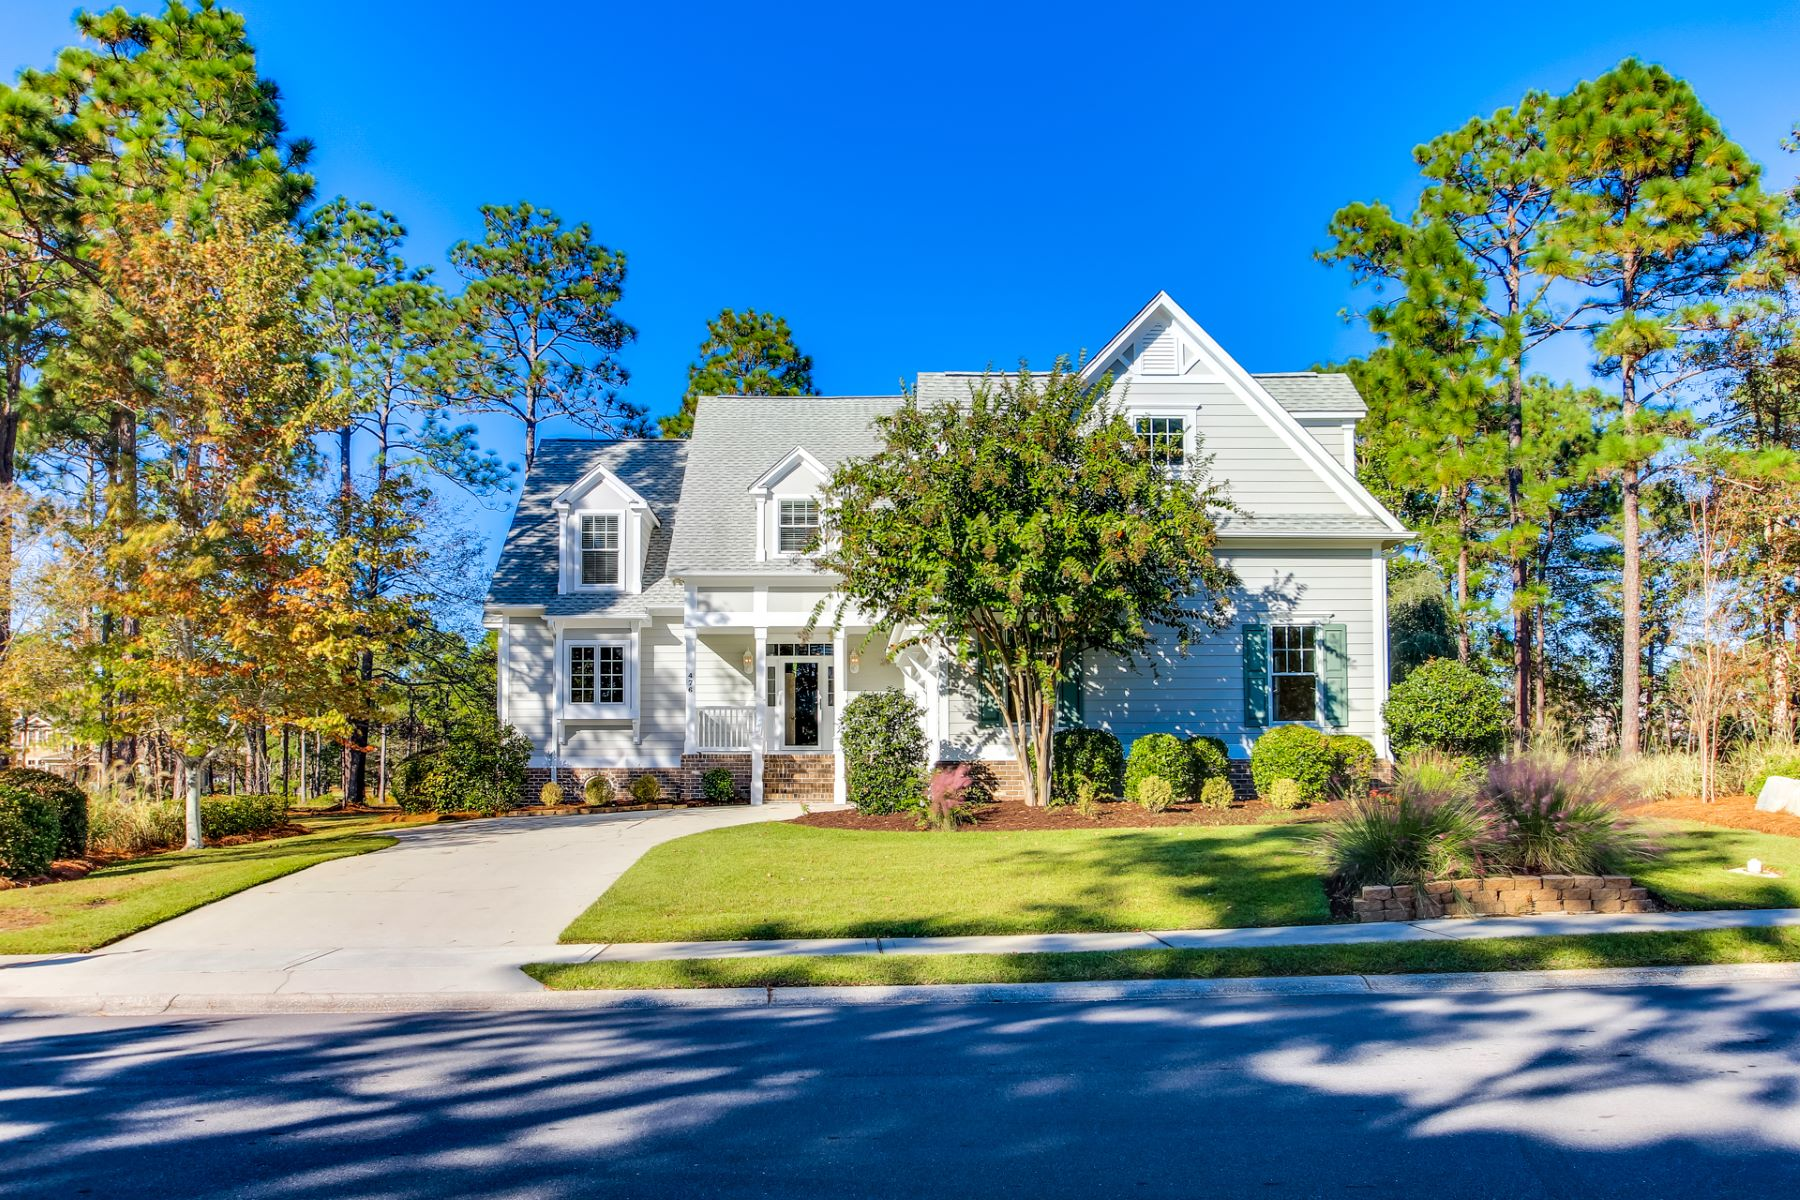 Single Family Homes for Sale at Beautiful Golf Course Home Near The Coast 476 Laurel Valley Drive Shallotte, North Carolina 28470 United States